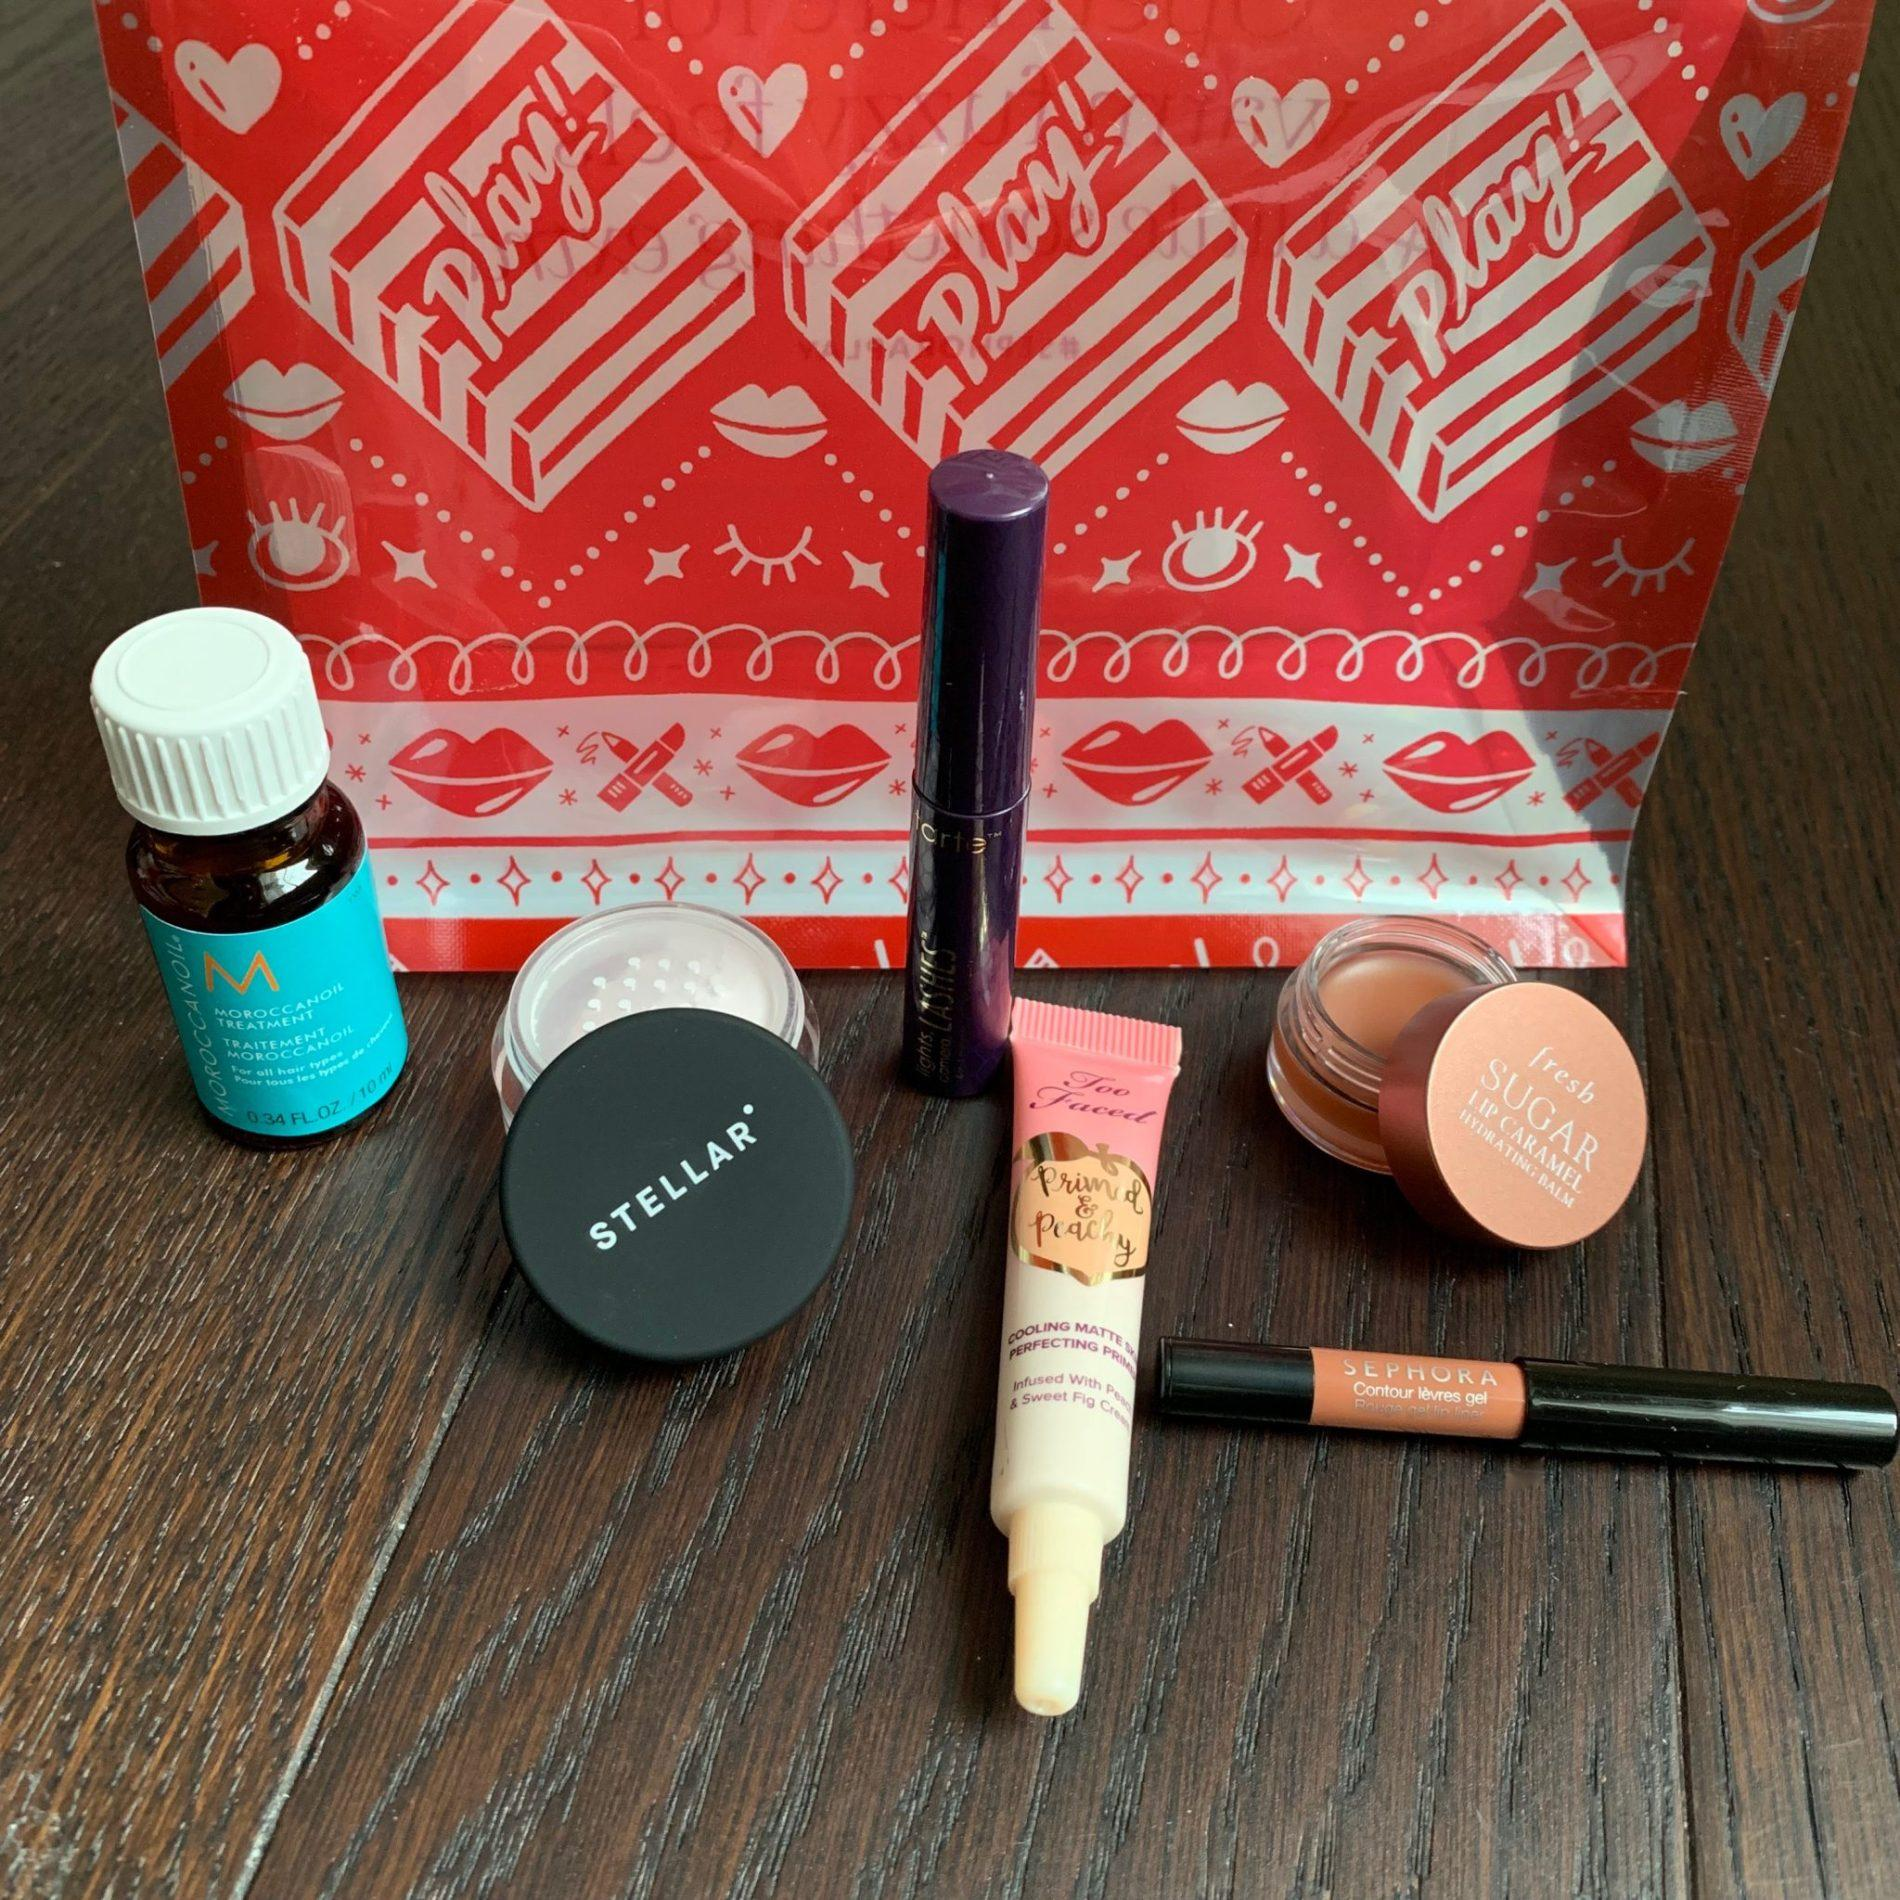 Play! by Sephora Review – December 2018